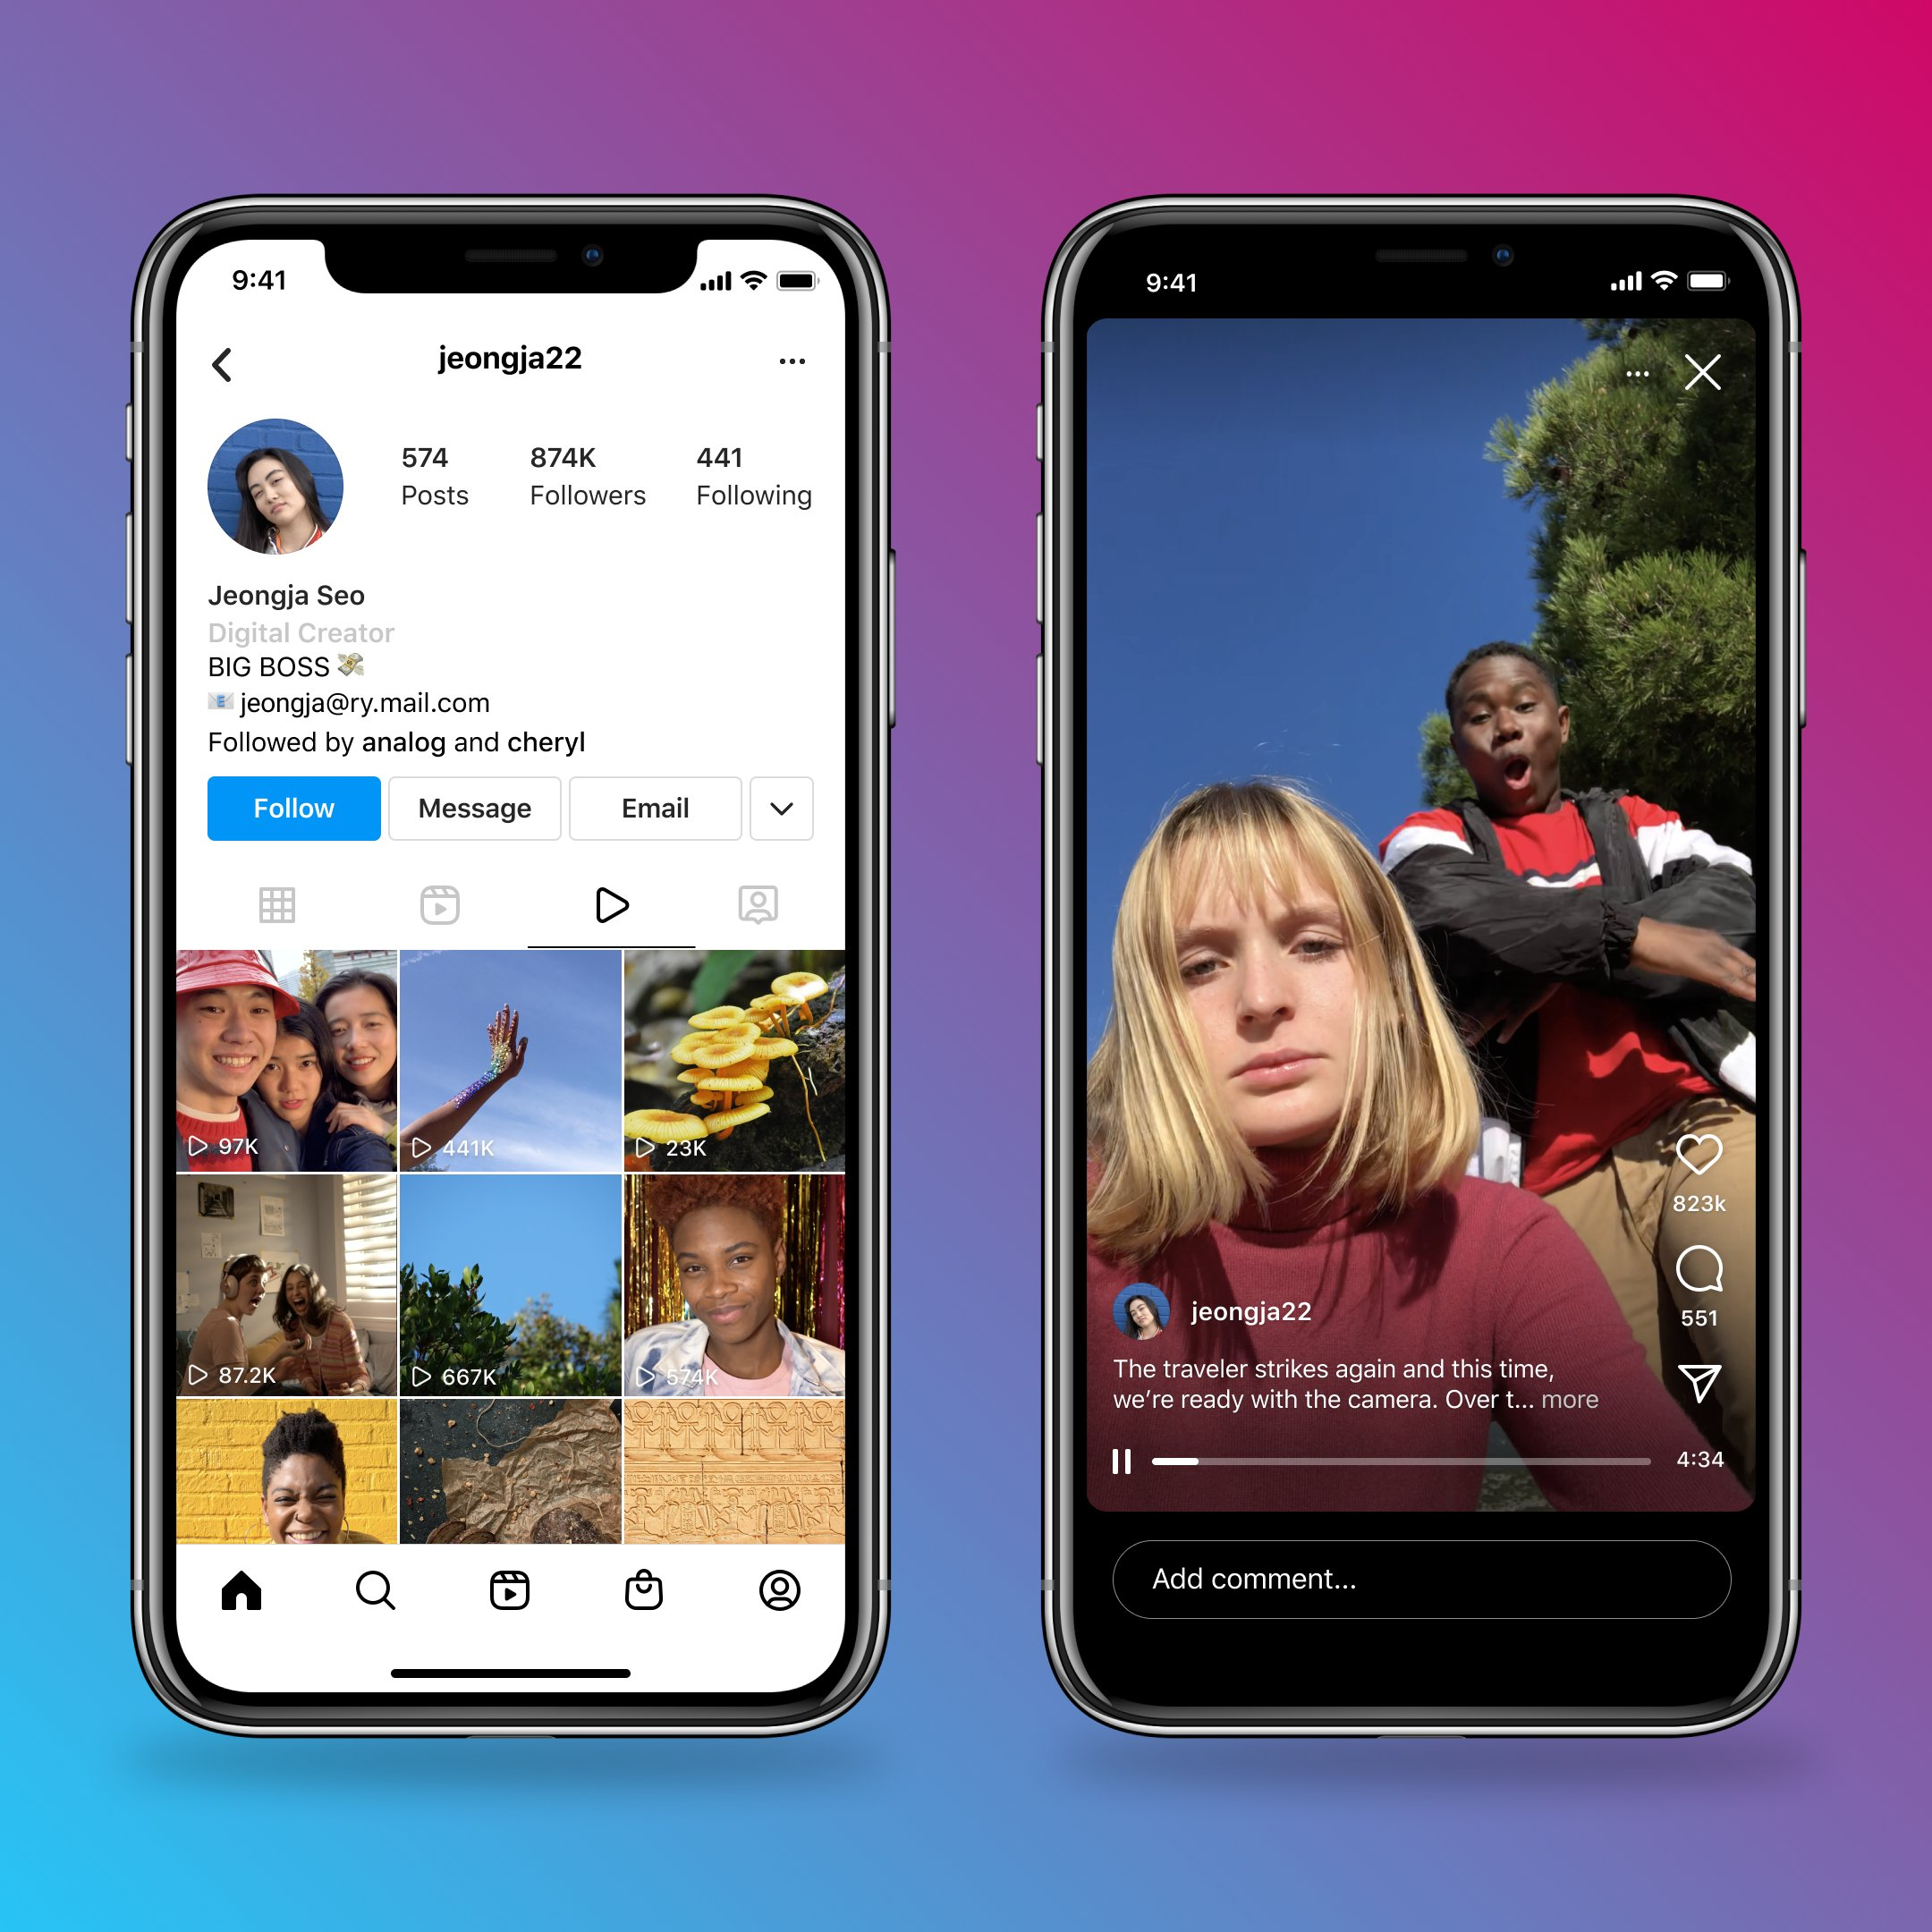 Two iPhone screenshots showing a new Video tab on Instagram profiles and the IGTV interface